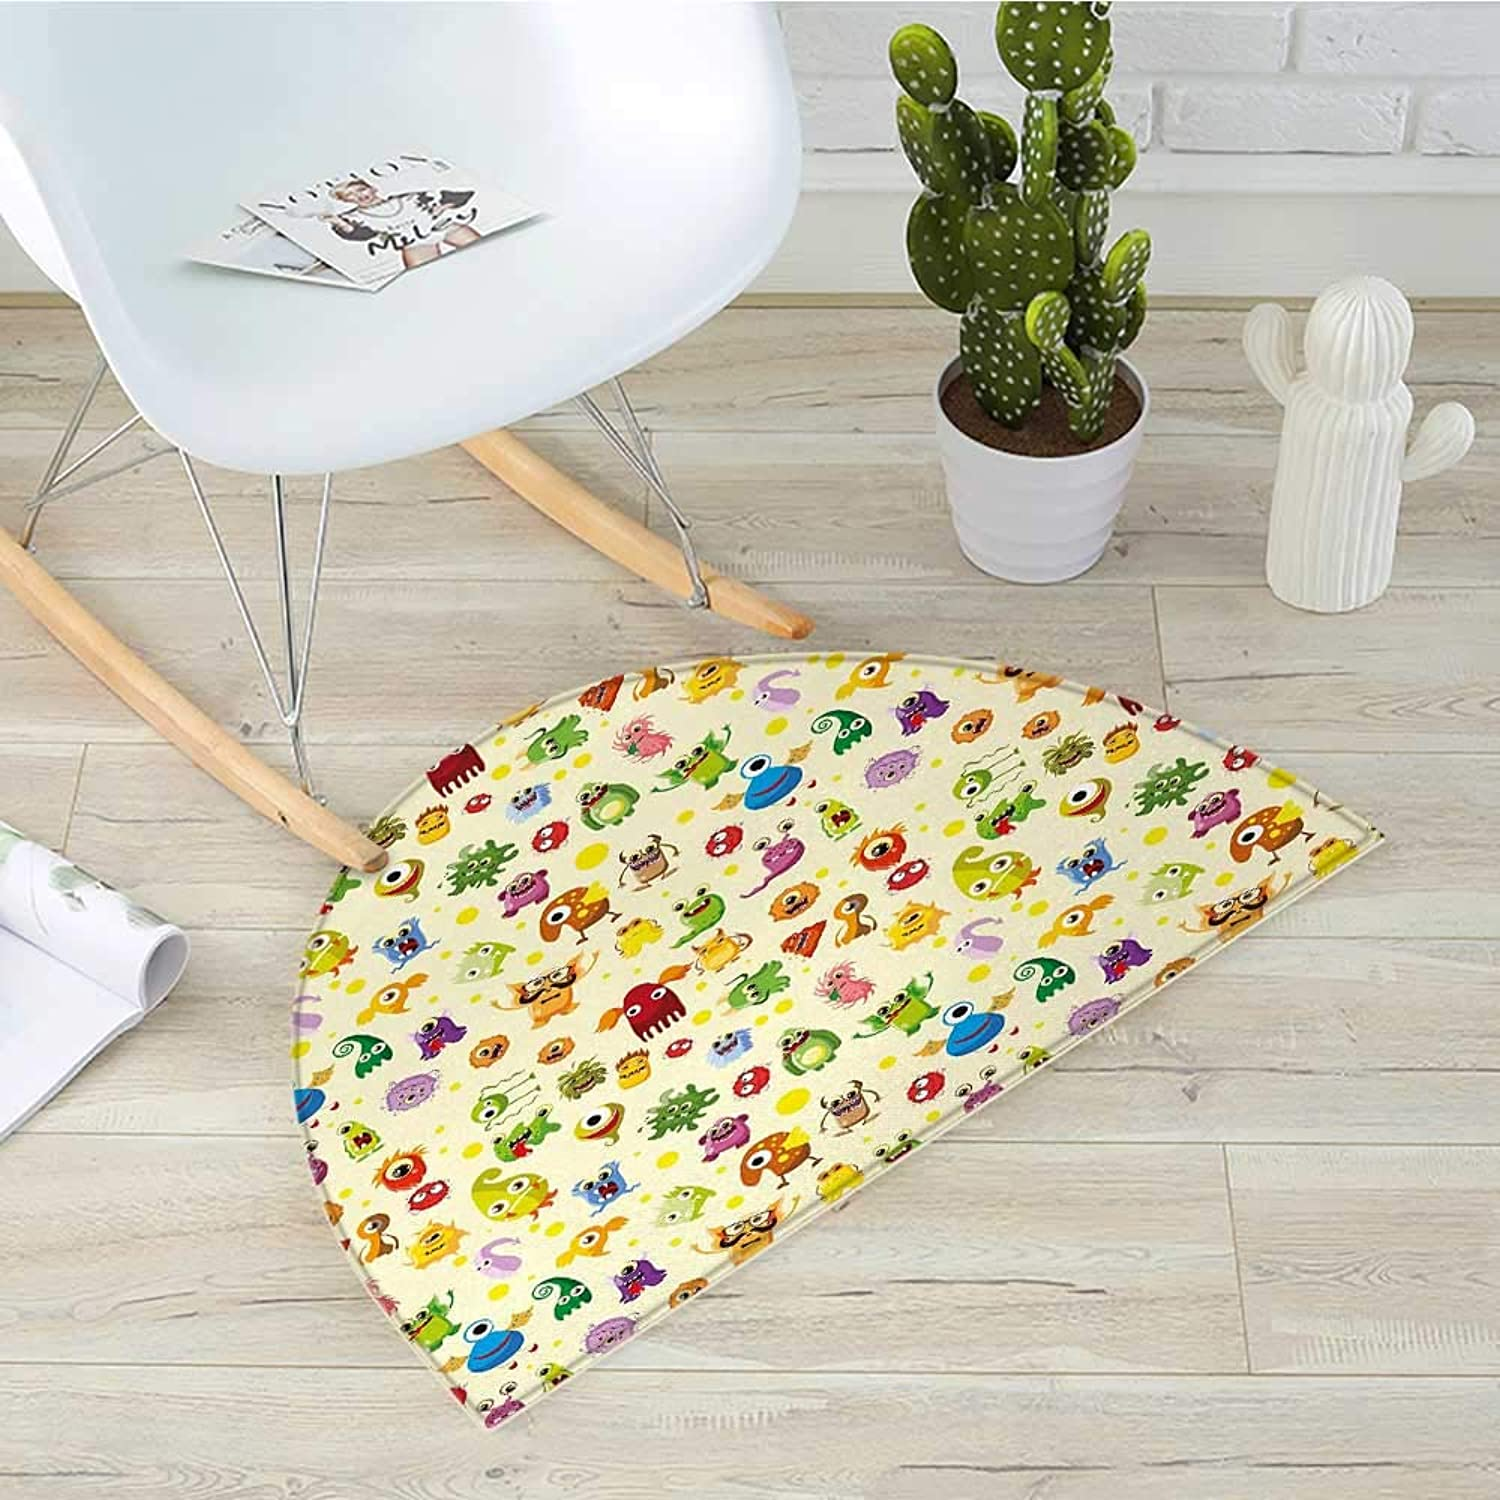 Kids Semicircular CushionDrawings Different Cartoon Style Characters Cute Monsters Funny Animals and Mutants Entry Door Mat H 51.1  xD 76.7  Multicolor